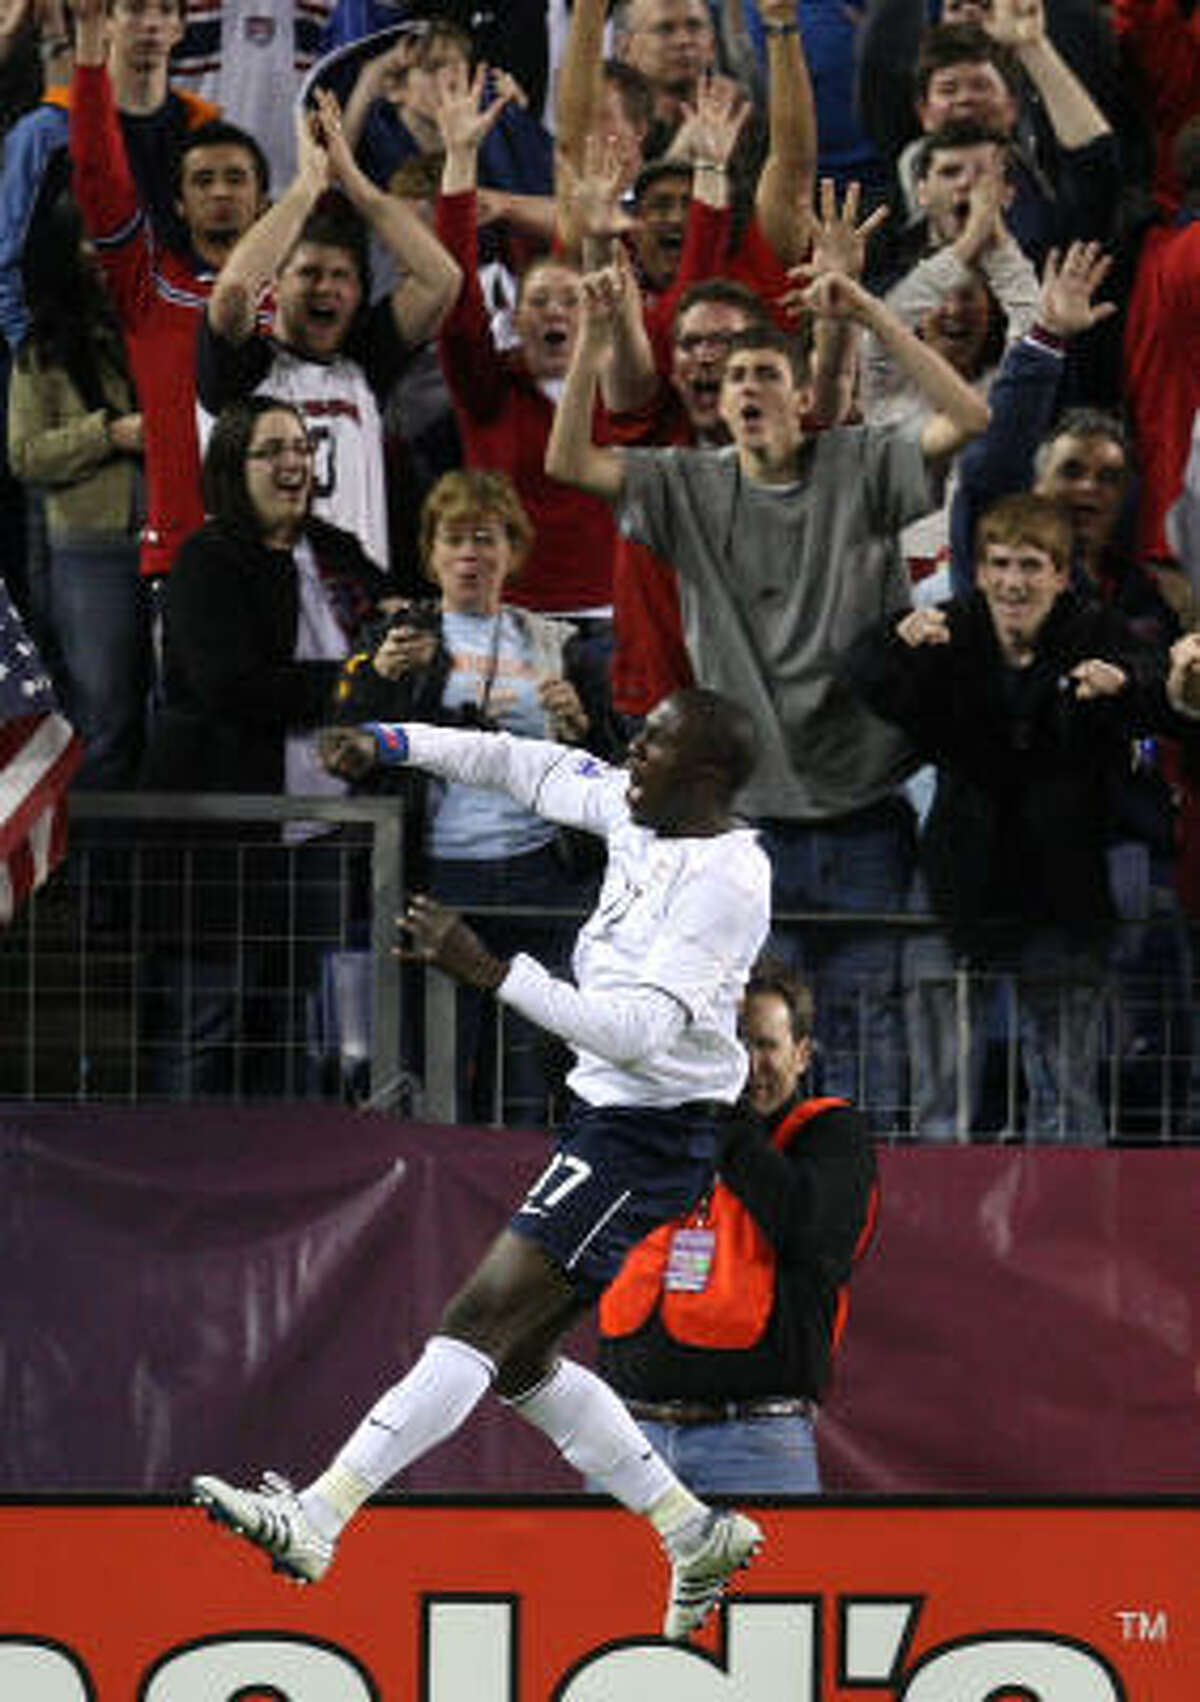 Jozy Altidore of the U.S. celebrates his second goal. Altidore scored all three U.S. goals.